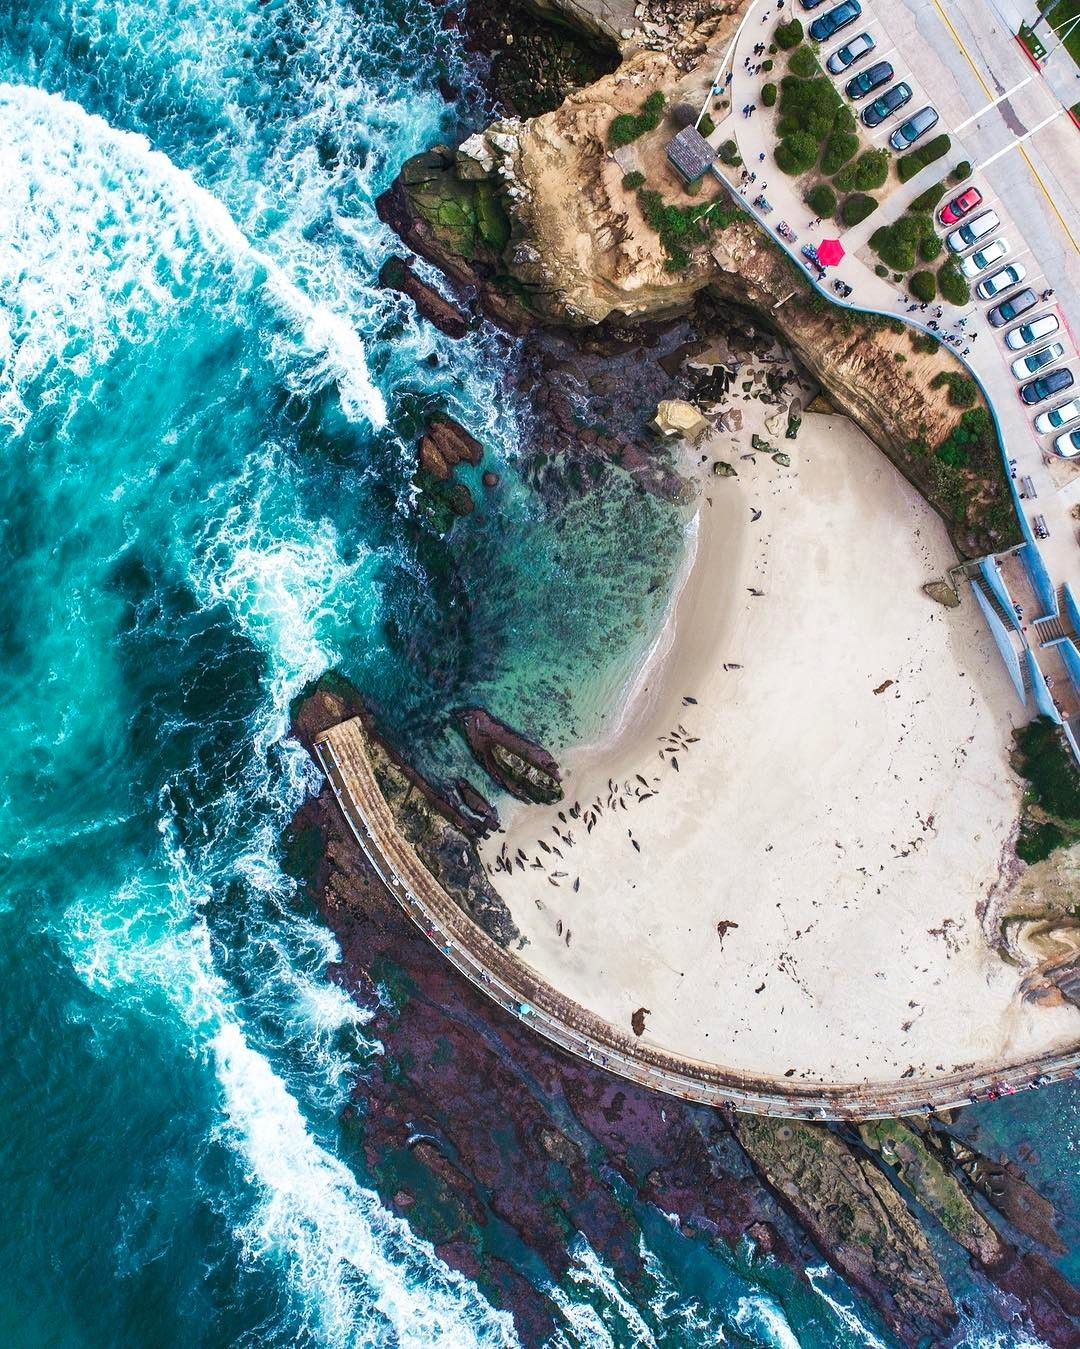 Drone Photography Cool Spot To See And Smell Some Seals Sea Lions Sandiego Credit Erdub54 Droneheroes Dronephoto Aerialphoto Aerialphotography